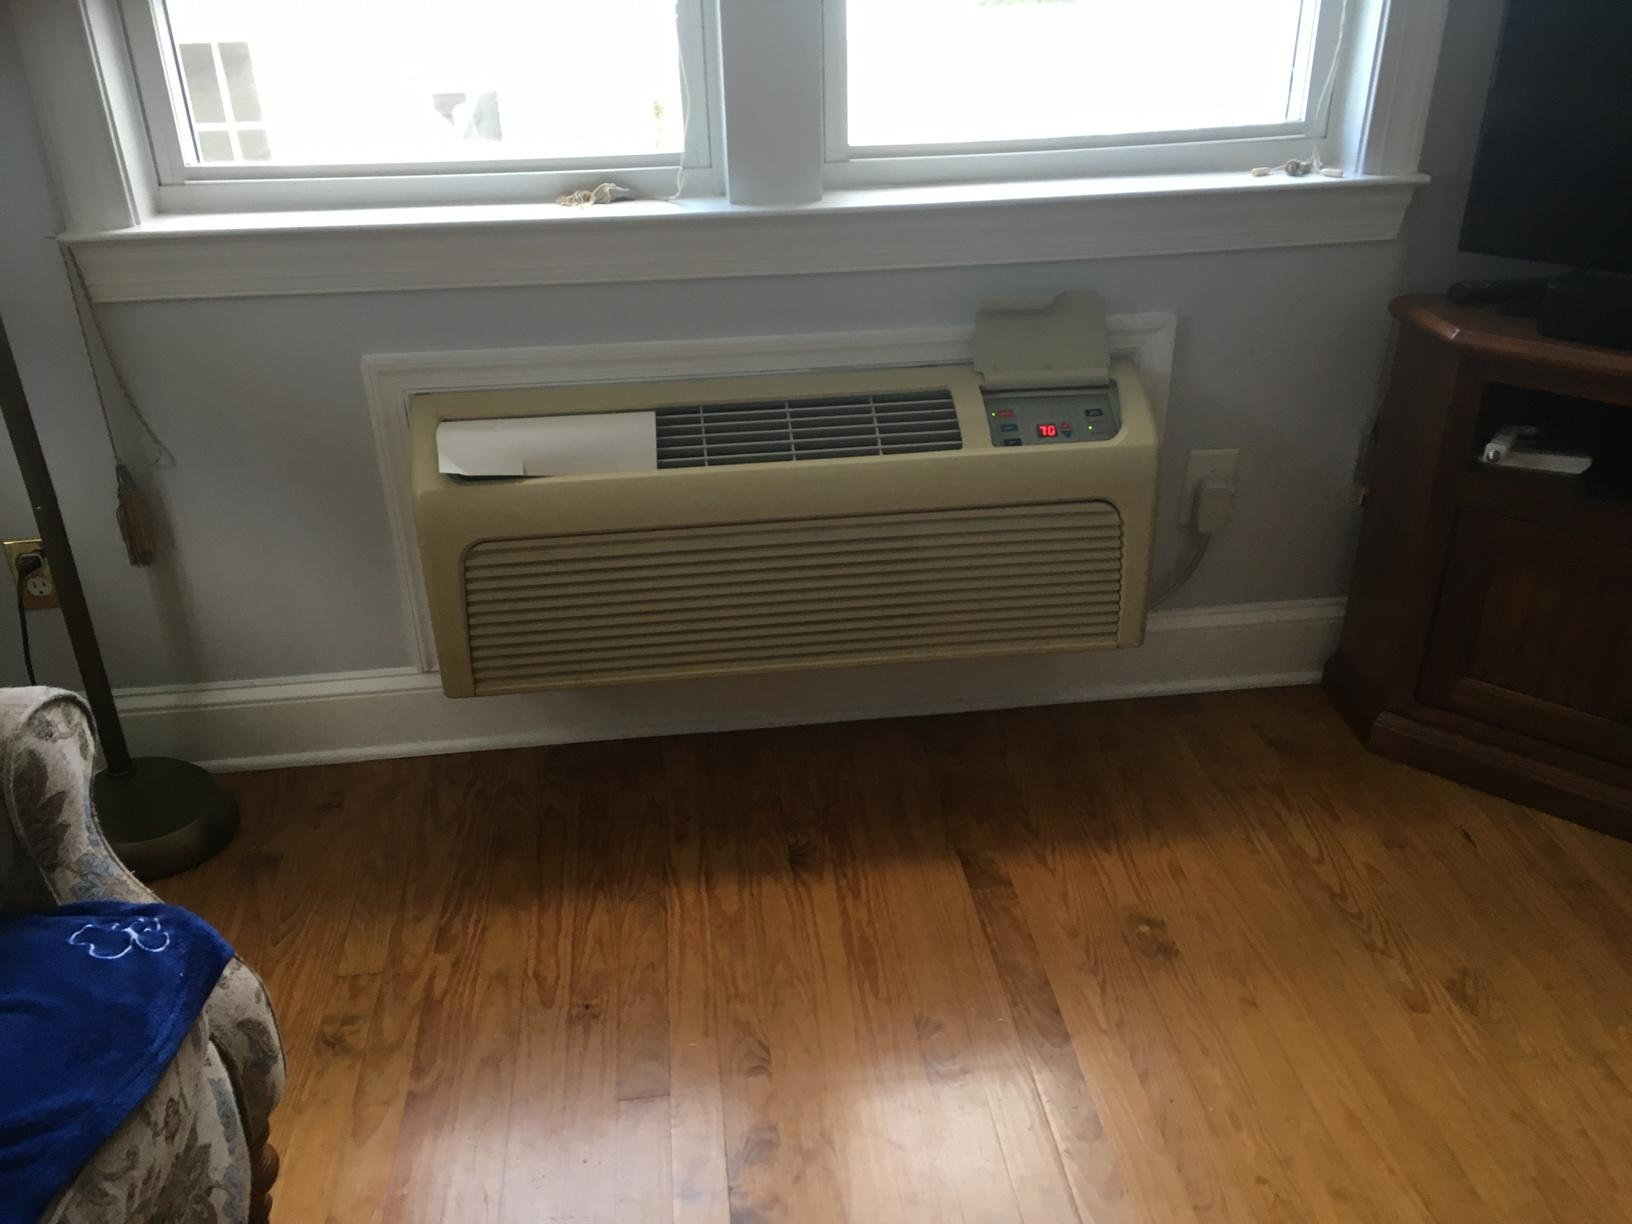 Installed a Fijitsu Mini Split Heat Pump in Oaklyn, NJ 08107 - Before Photo